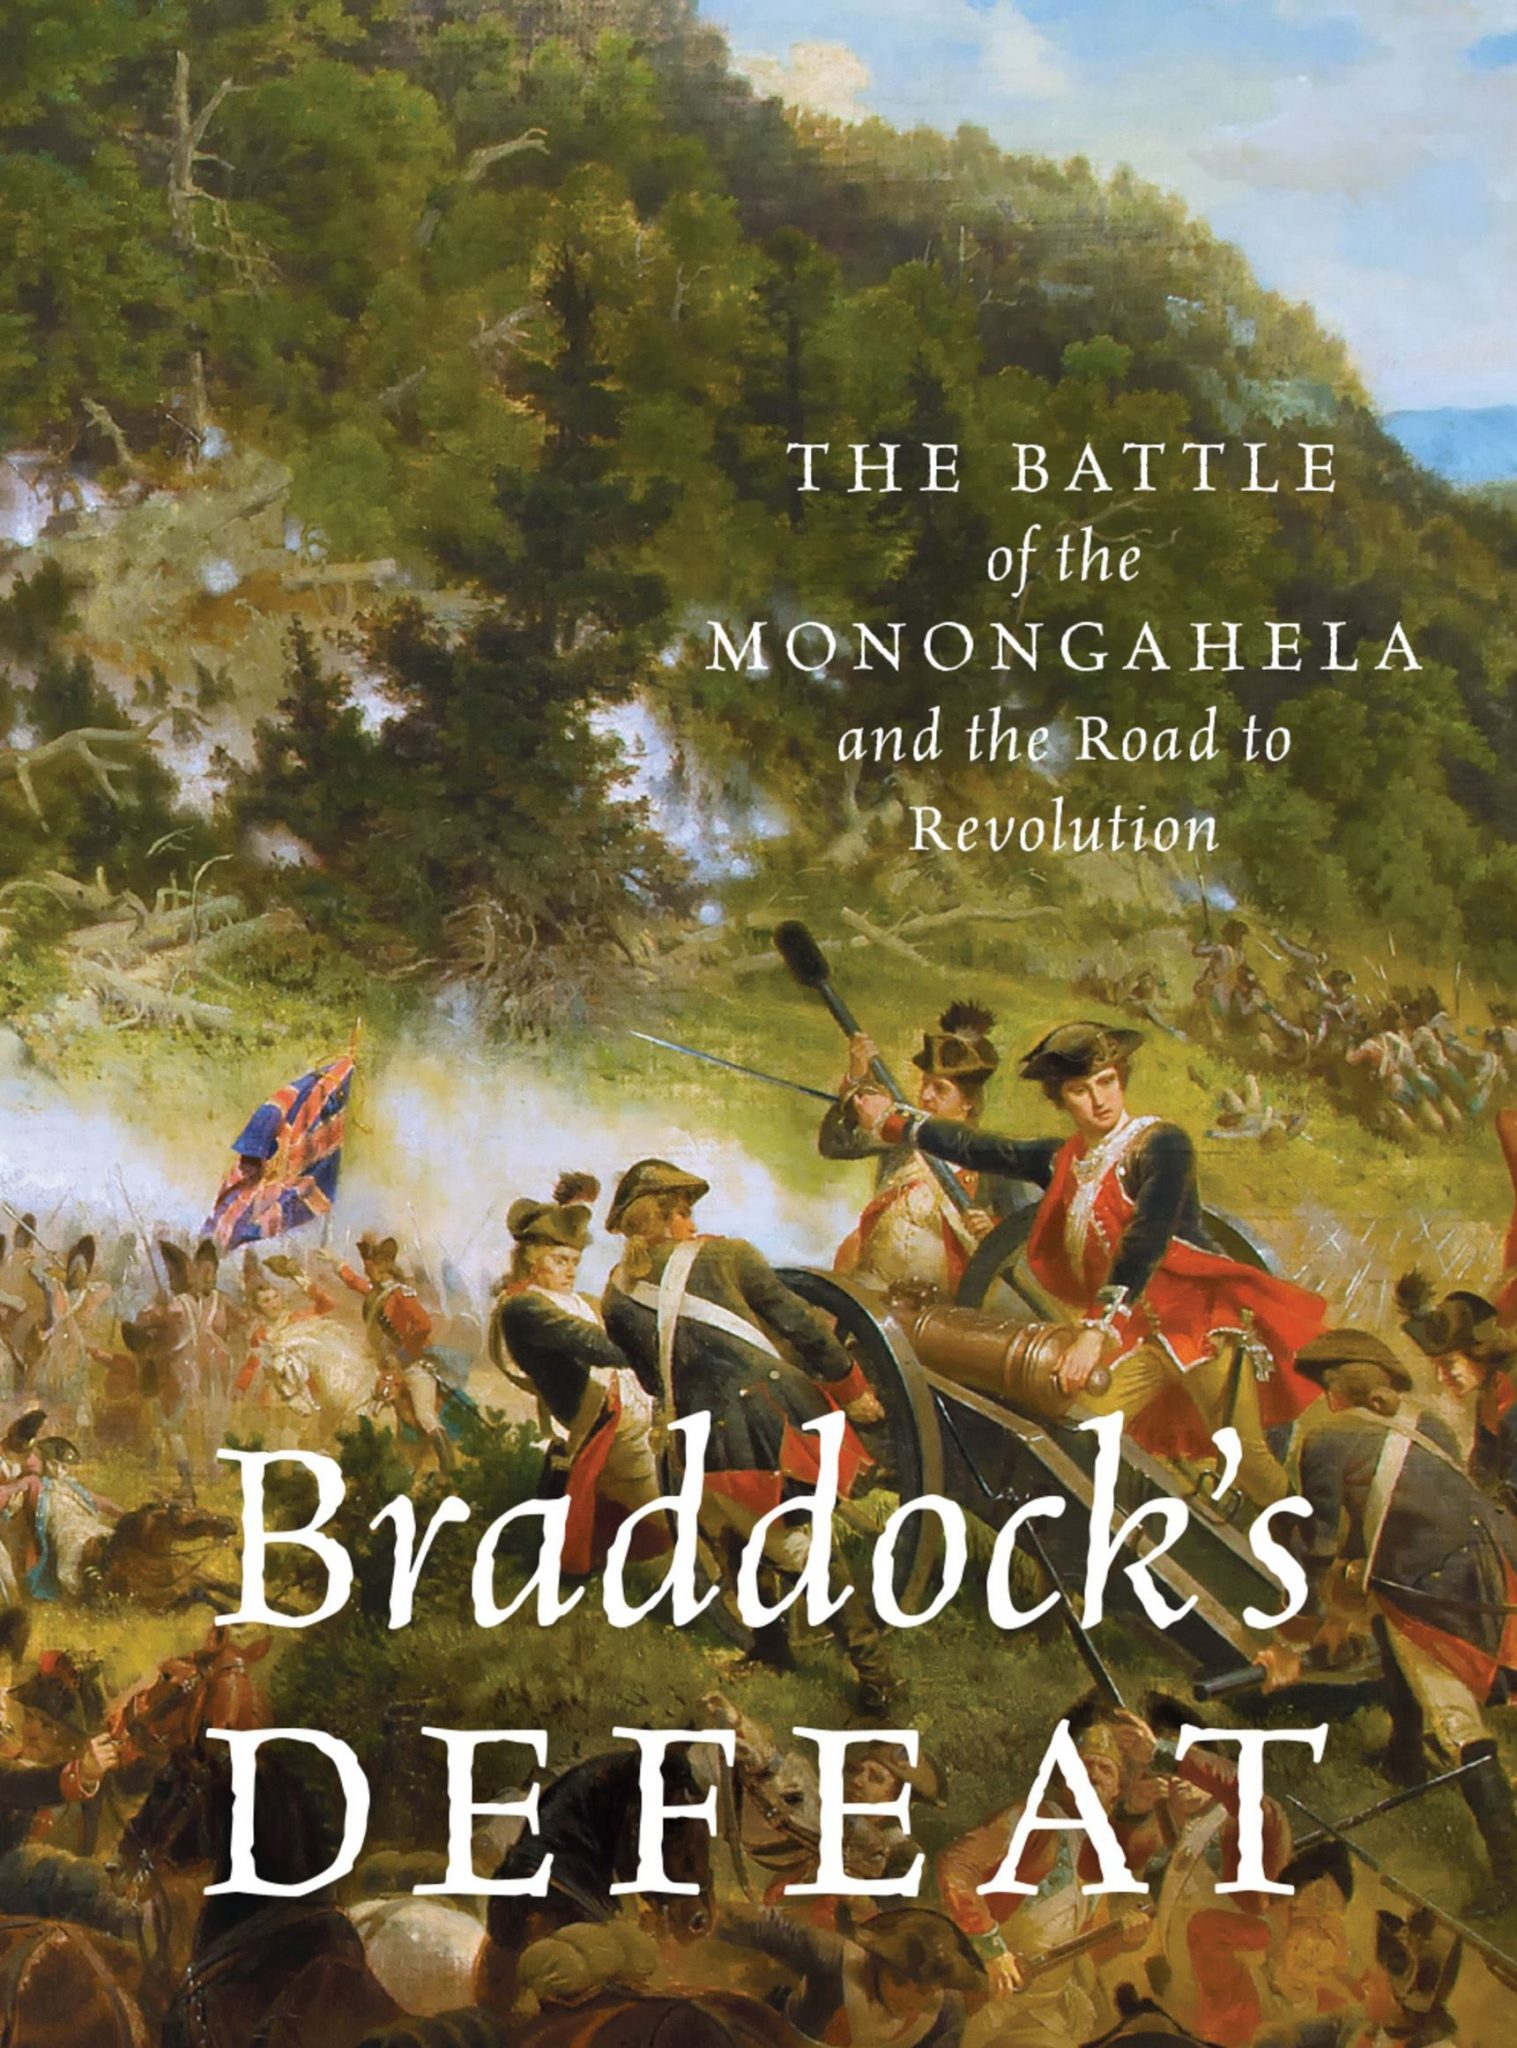 Braddock-s-Defeat-The-Battle-of-the-Monongahela-and-the-Road-to-Revolution-by-David-Preston